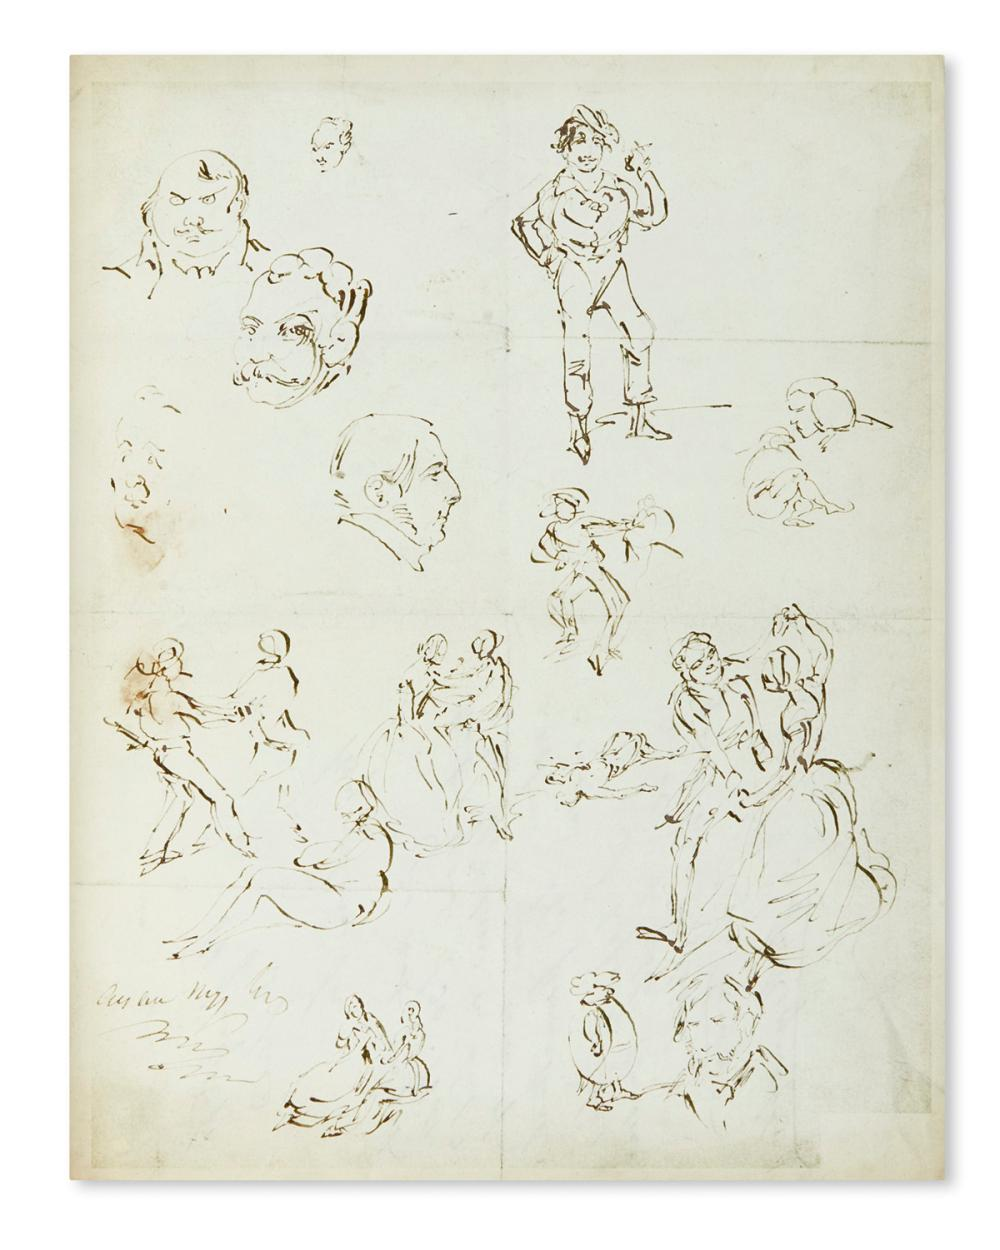 CRUIKSHANK, GEORGE. Over 200 drawings in ink or pencil, 6 Signed, small fragmentary sketches,